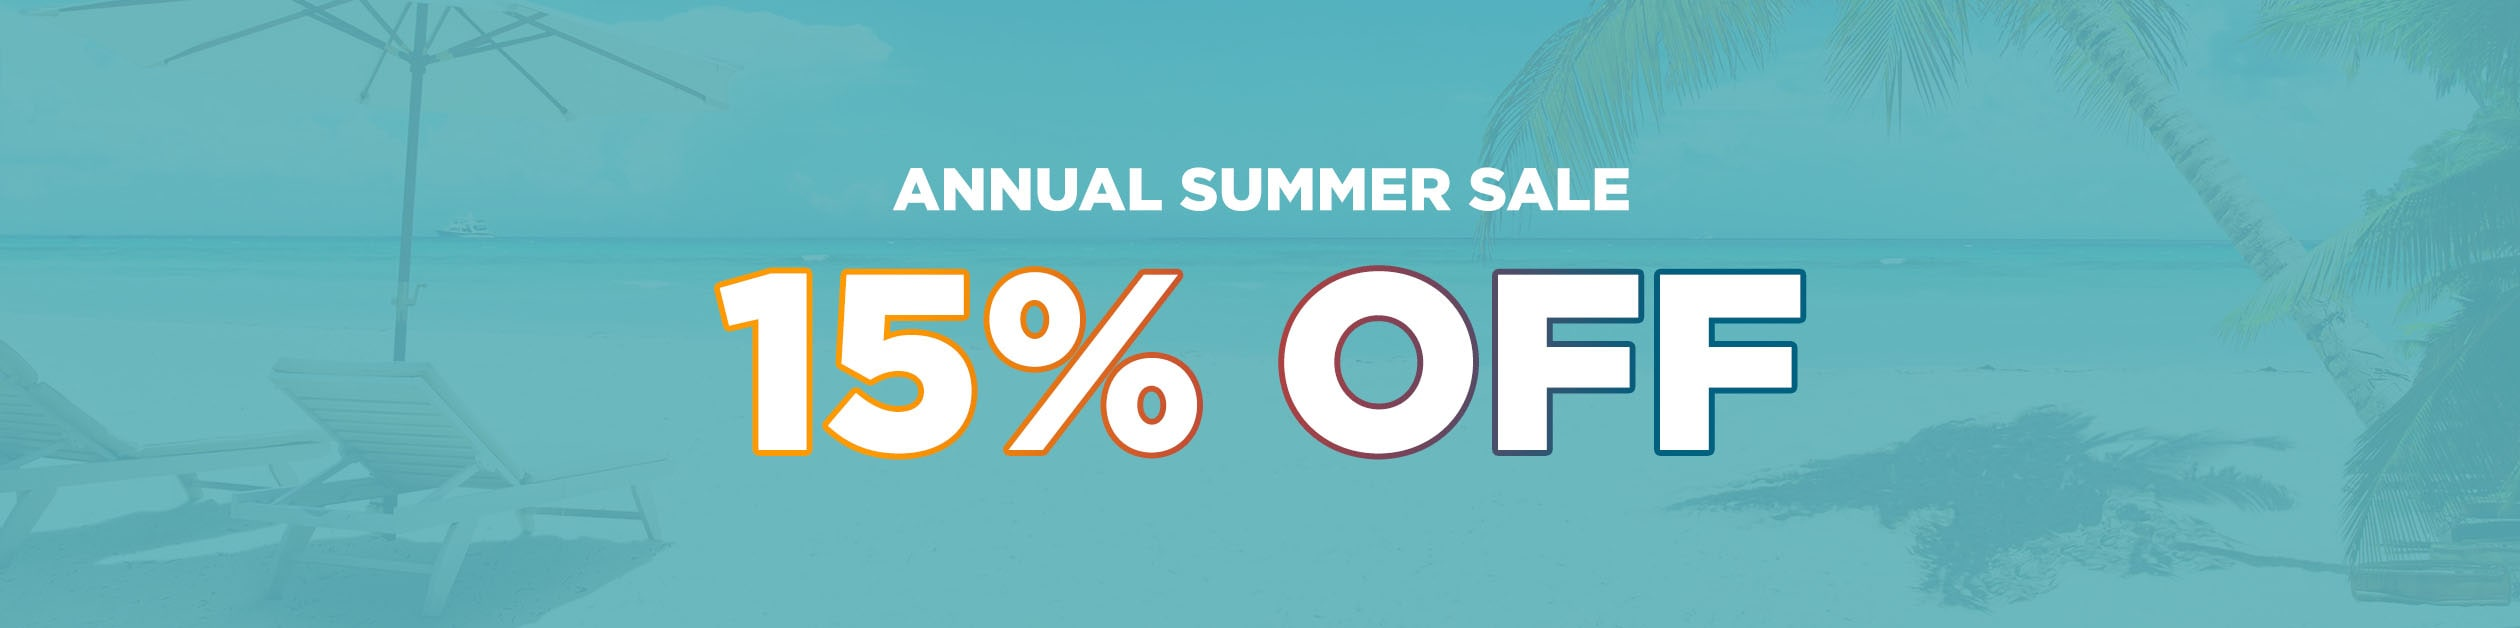 Save 15% with our Annual Summer Sale!